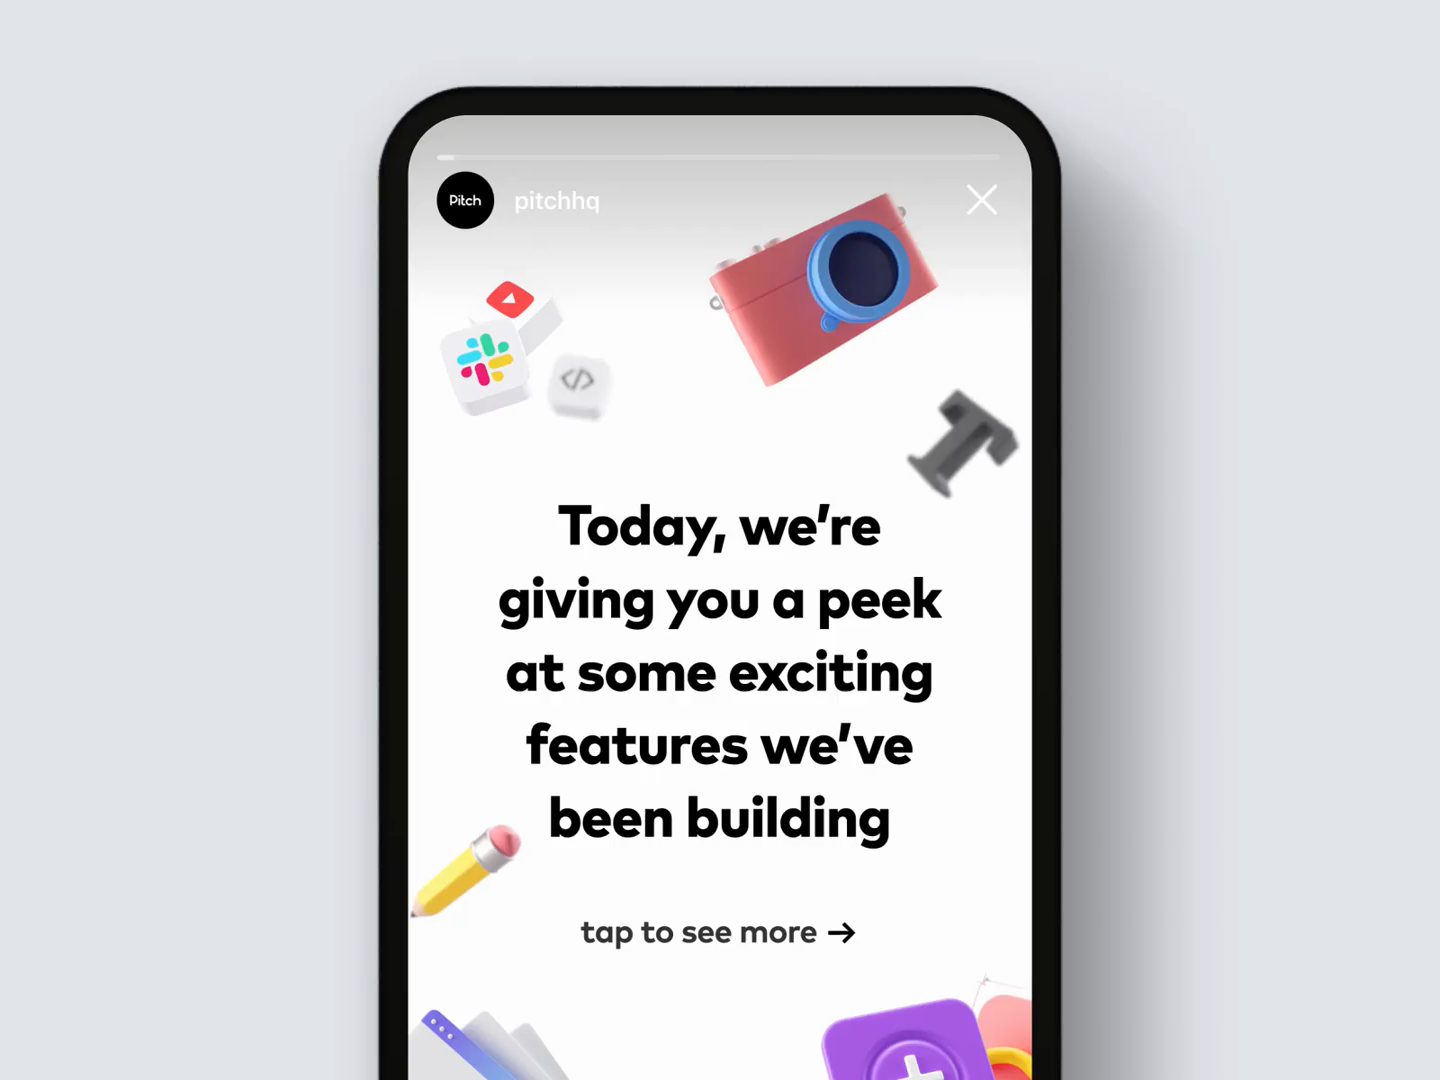 First look at Pitch Instagram Story